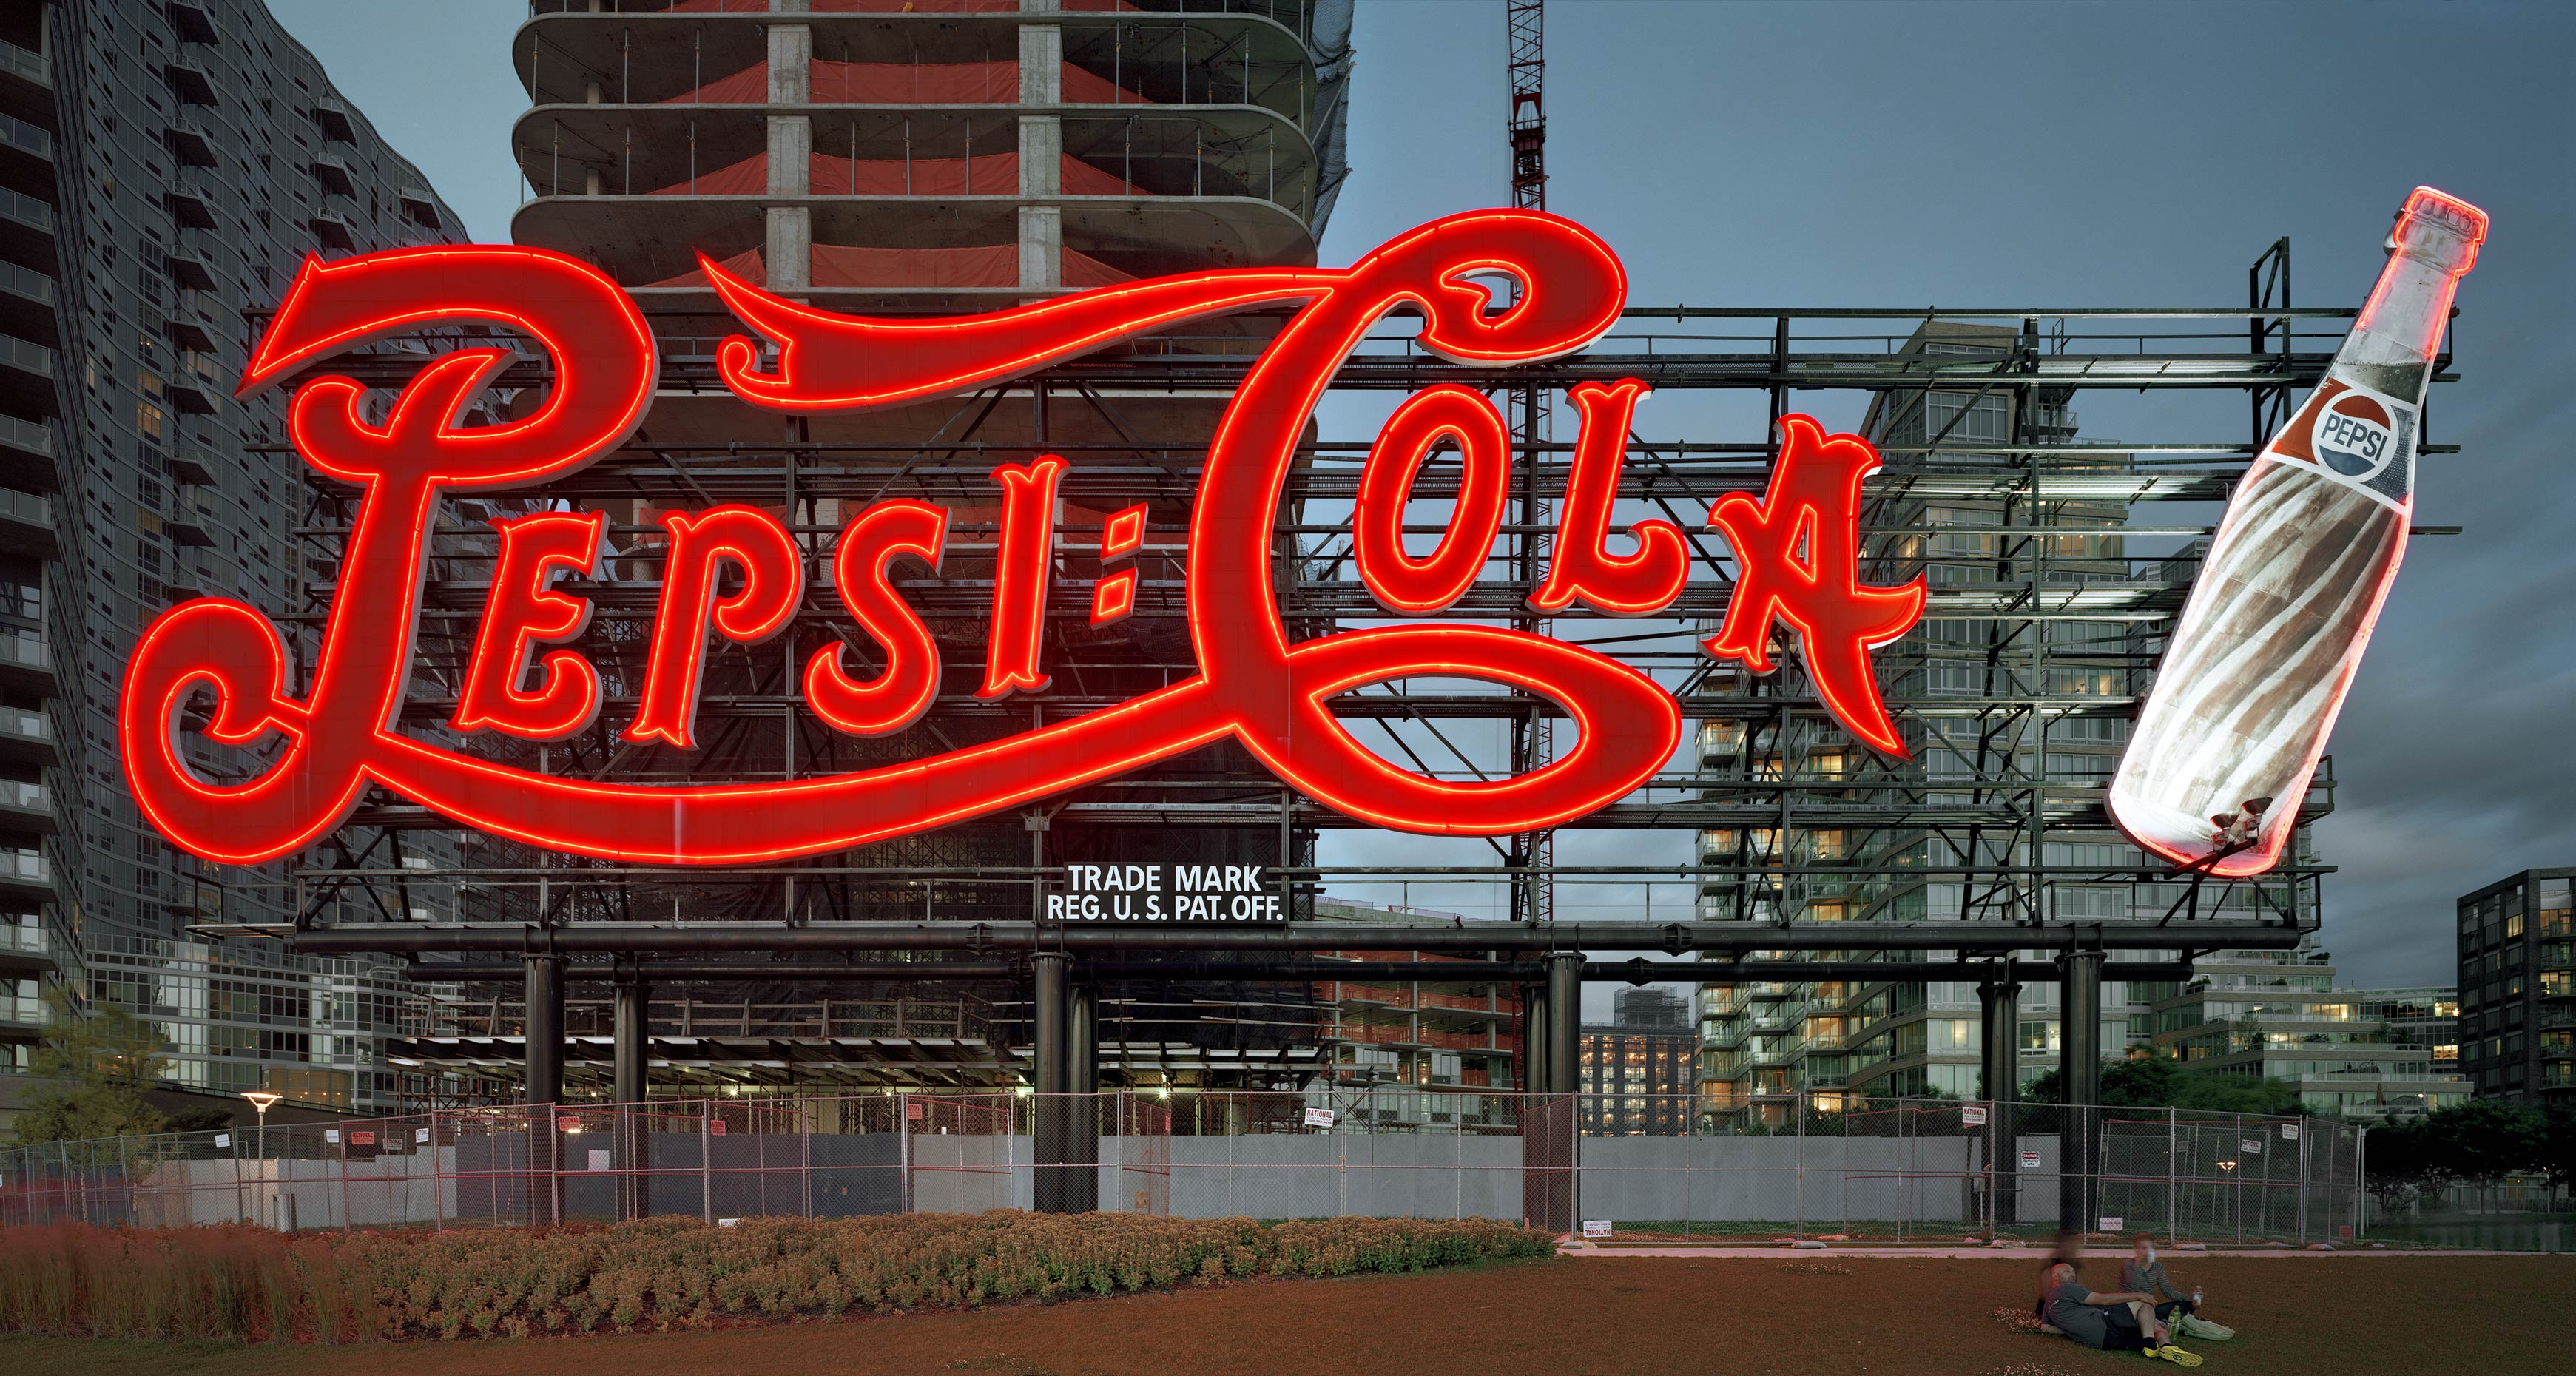 Pepsi-Cola Sign, Gantry Plaza State Park, Long Island City, New York